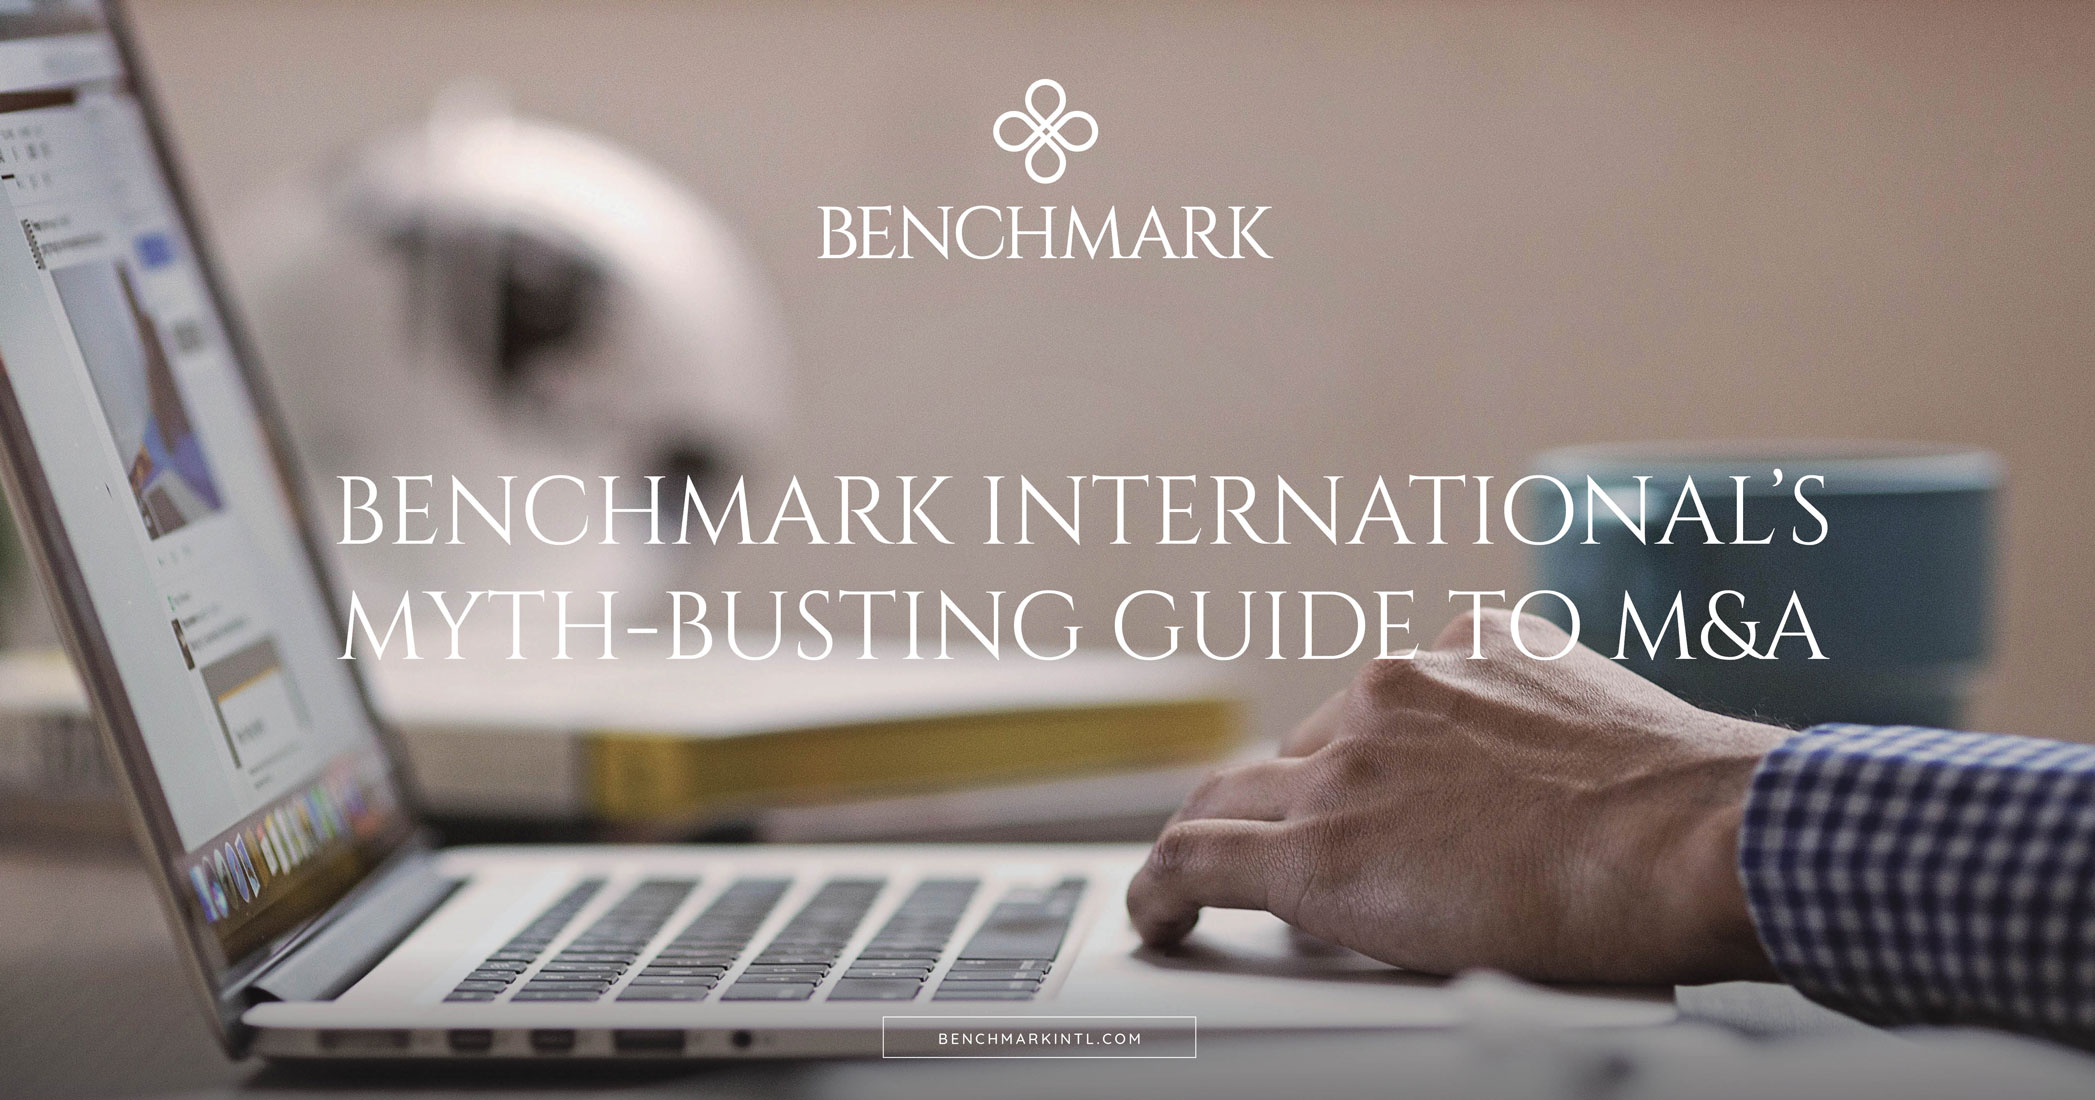 Benchmark International's Myth-Busting Guide to M&A